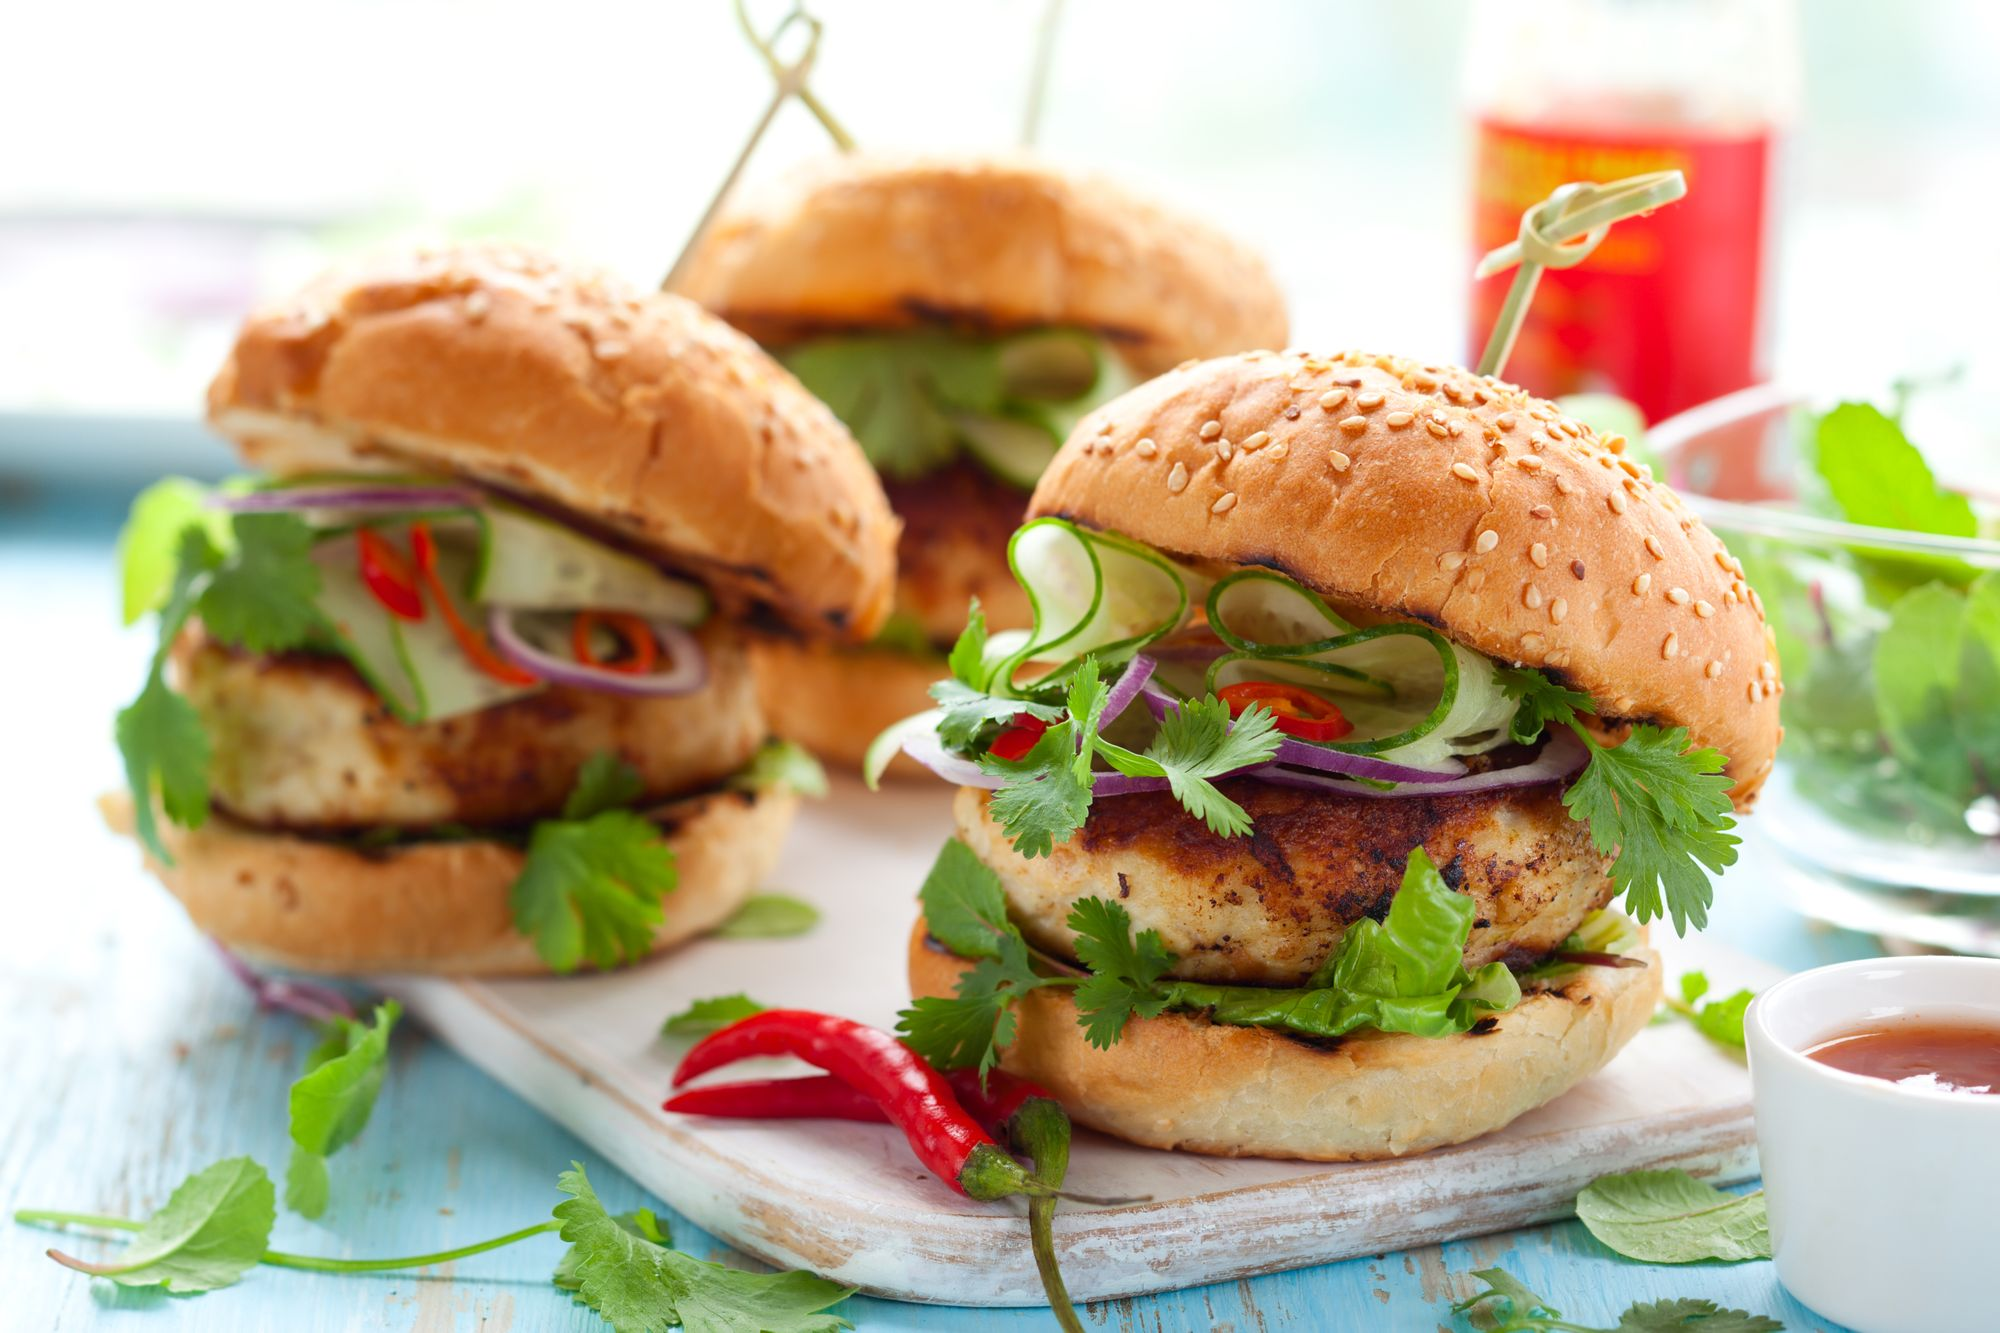 Thai Barbecue Burgers